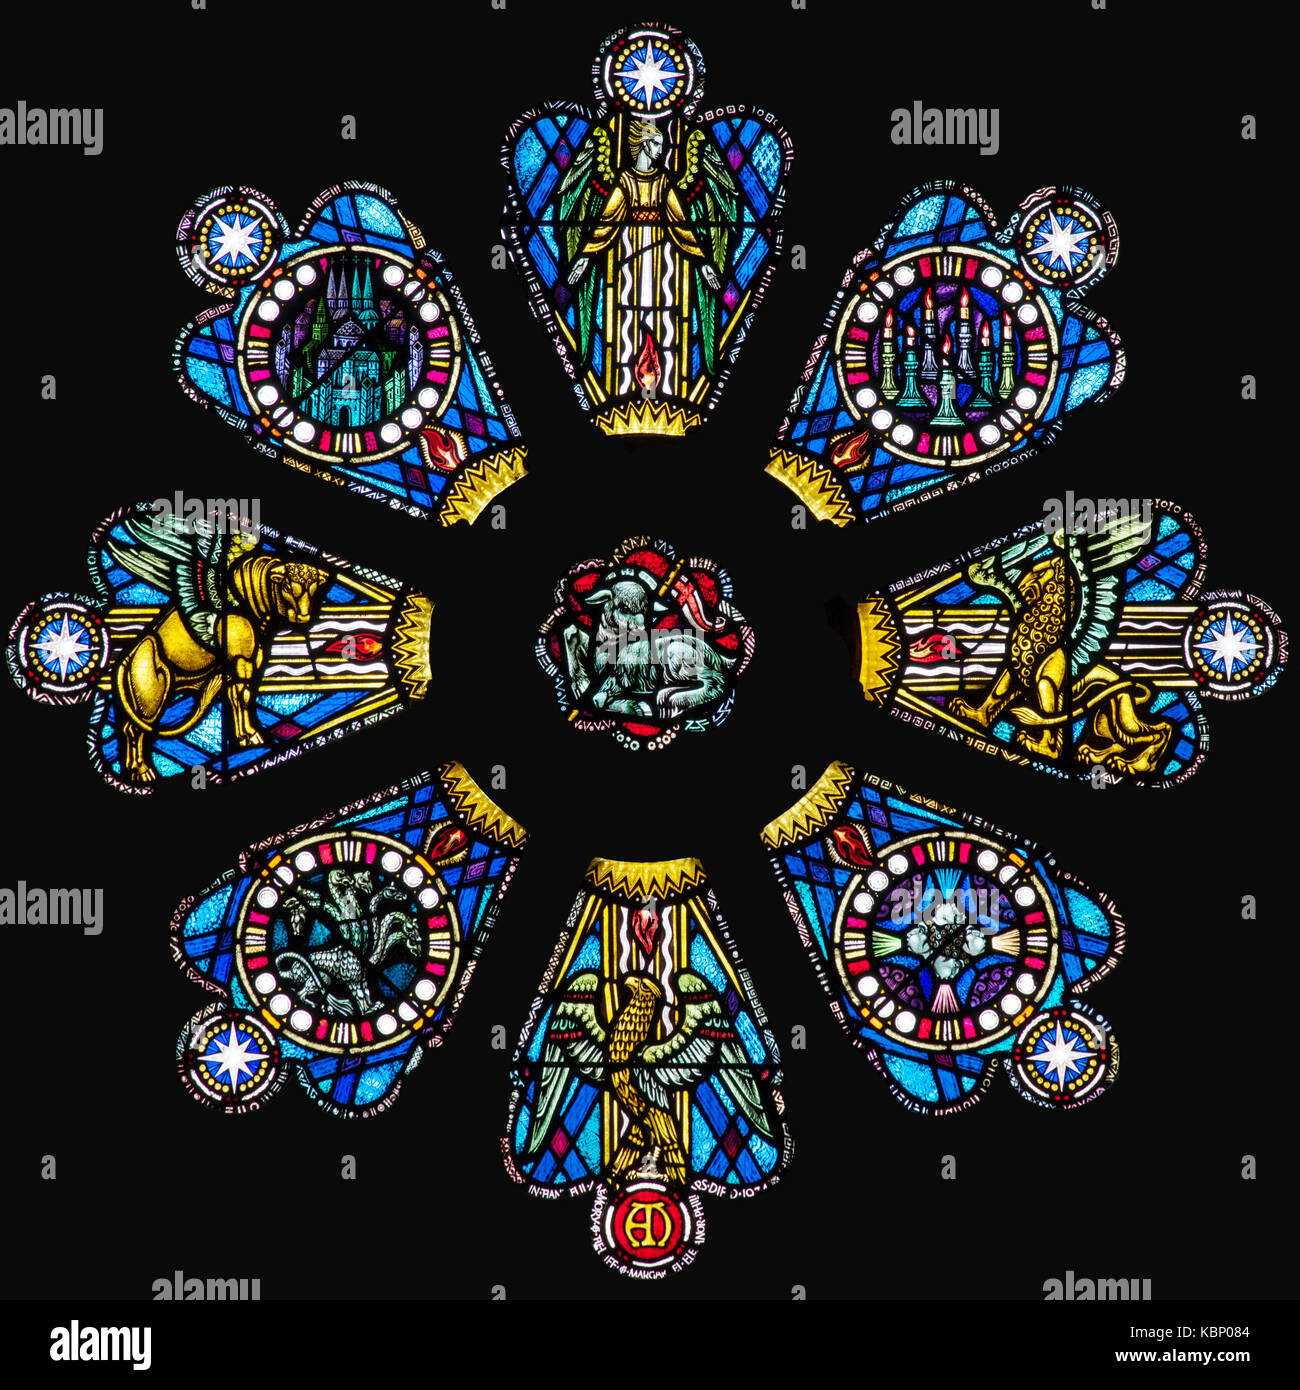 Symbols of the Evangelists, Frederick W. Cole, St. David's Cathedral, Wales, United Kingdom - Stock Image